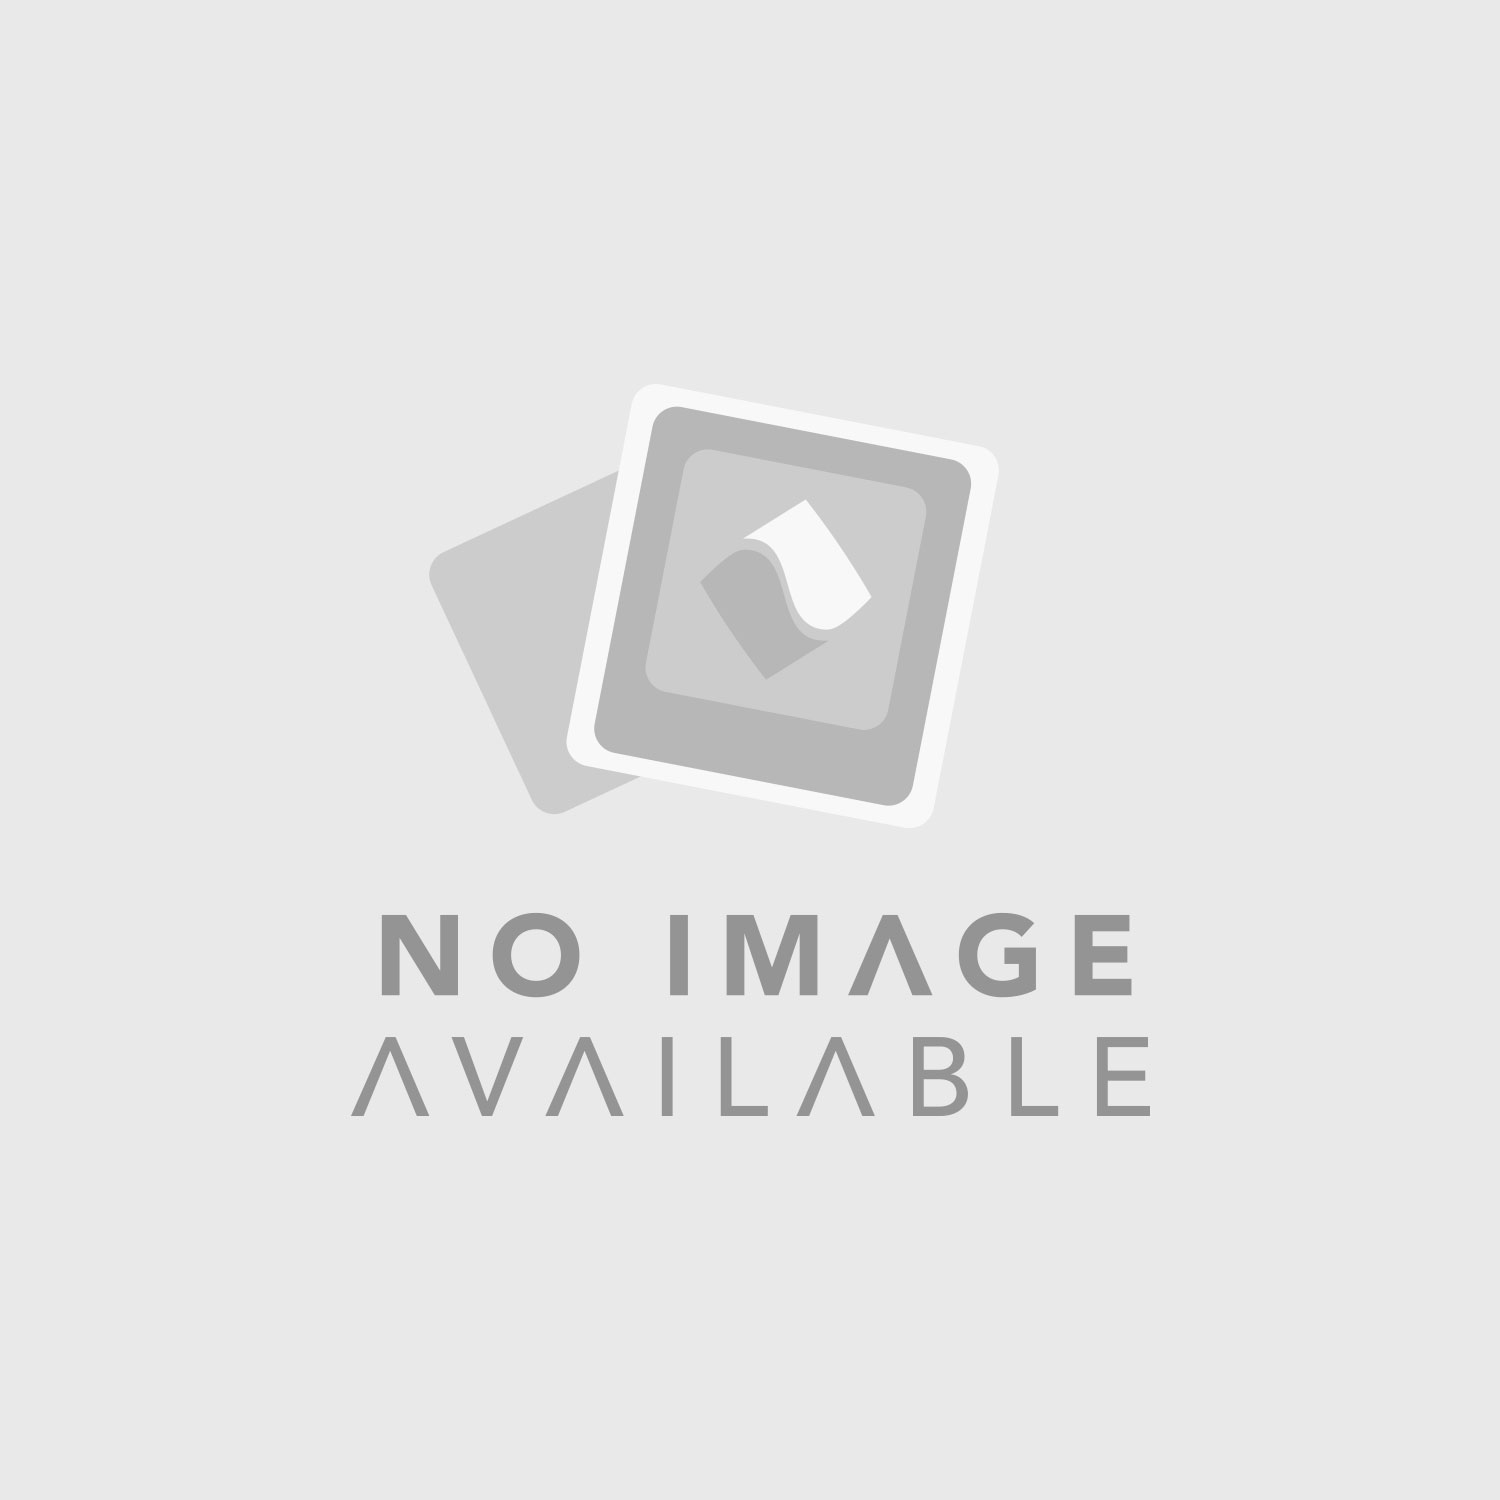 CITC High-Performance Haze Fluid (1 Gallon)